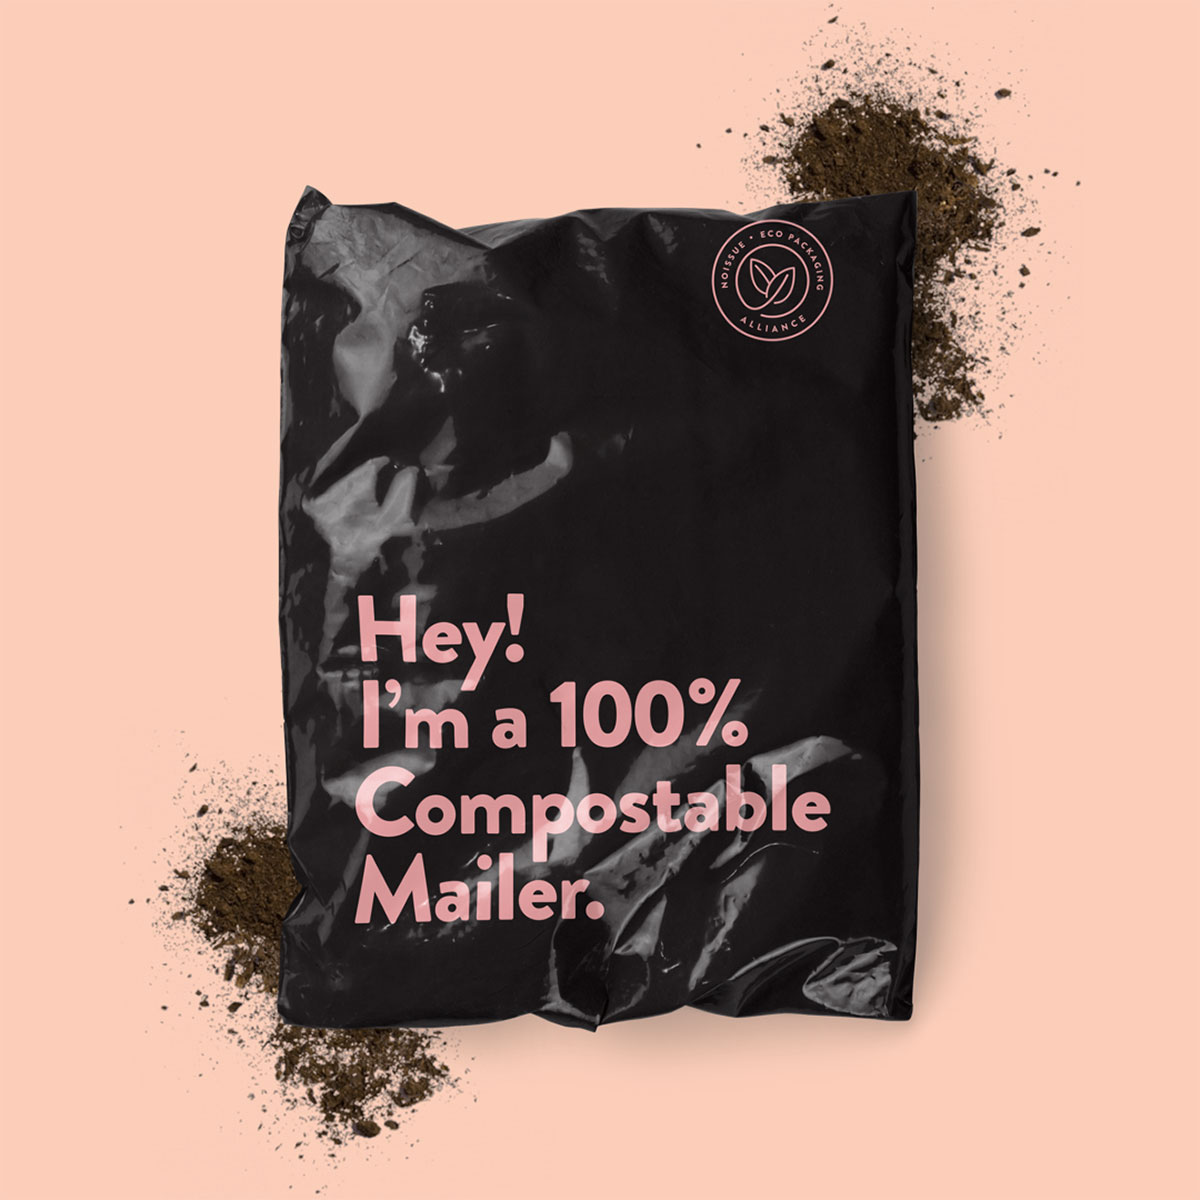 Example of compostable packaging